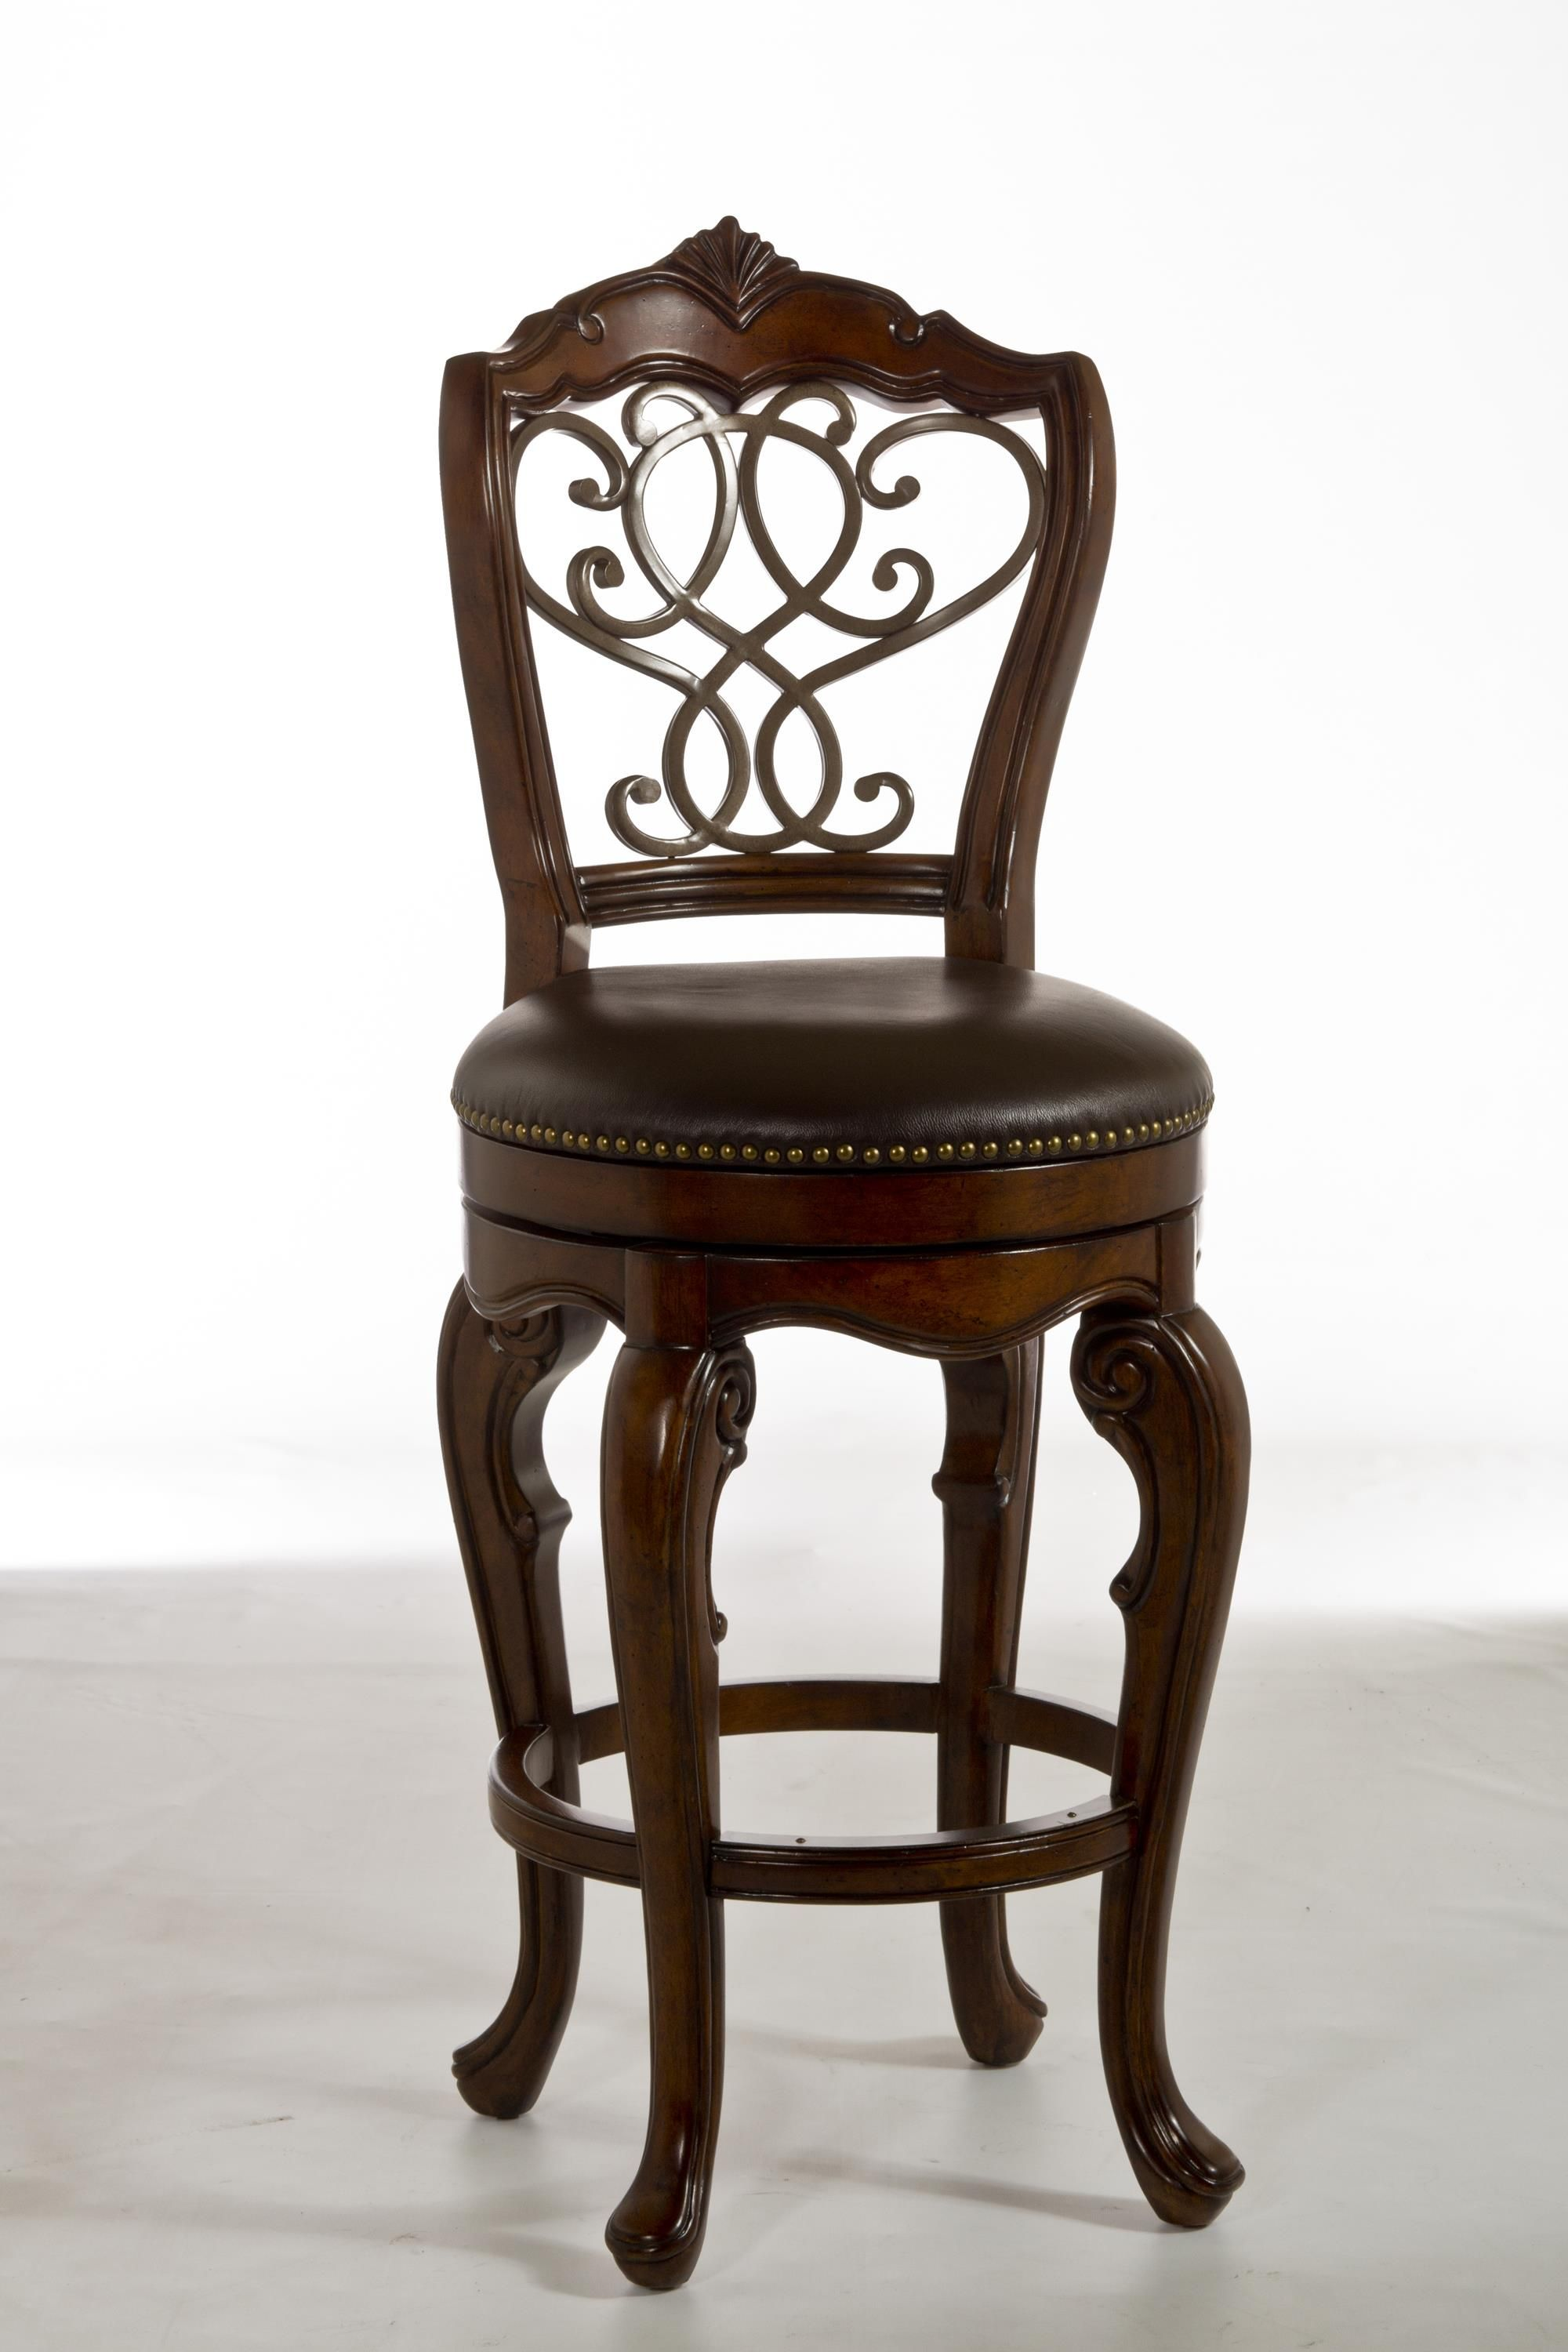 Astounding Wood Stools Burrell Swivel Counter Stool With Scroll Work By Ibusinesslaw Wood Chair Design Ideas Ibusinesslaworg